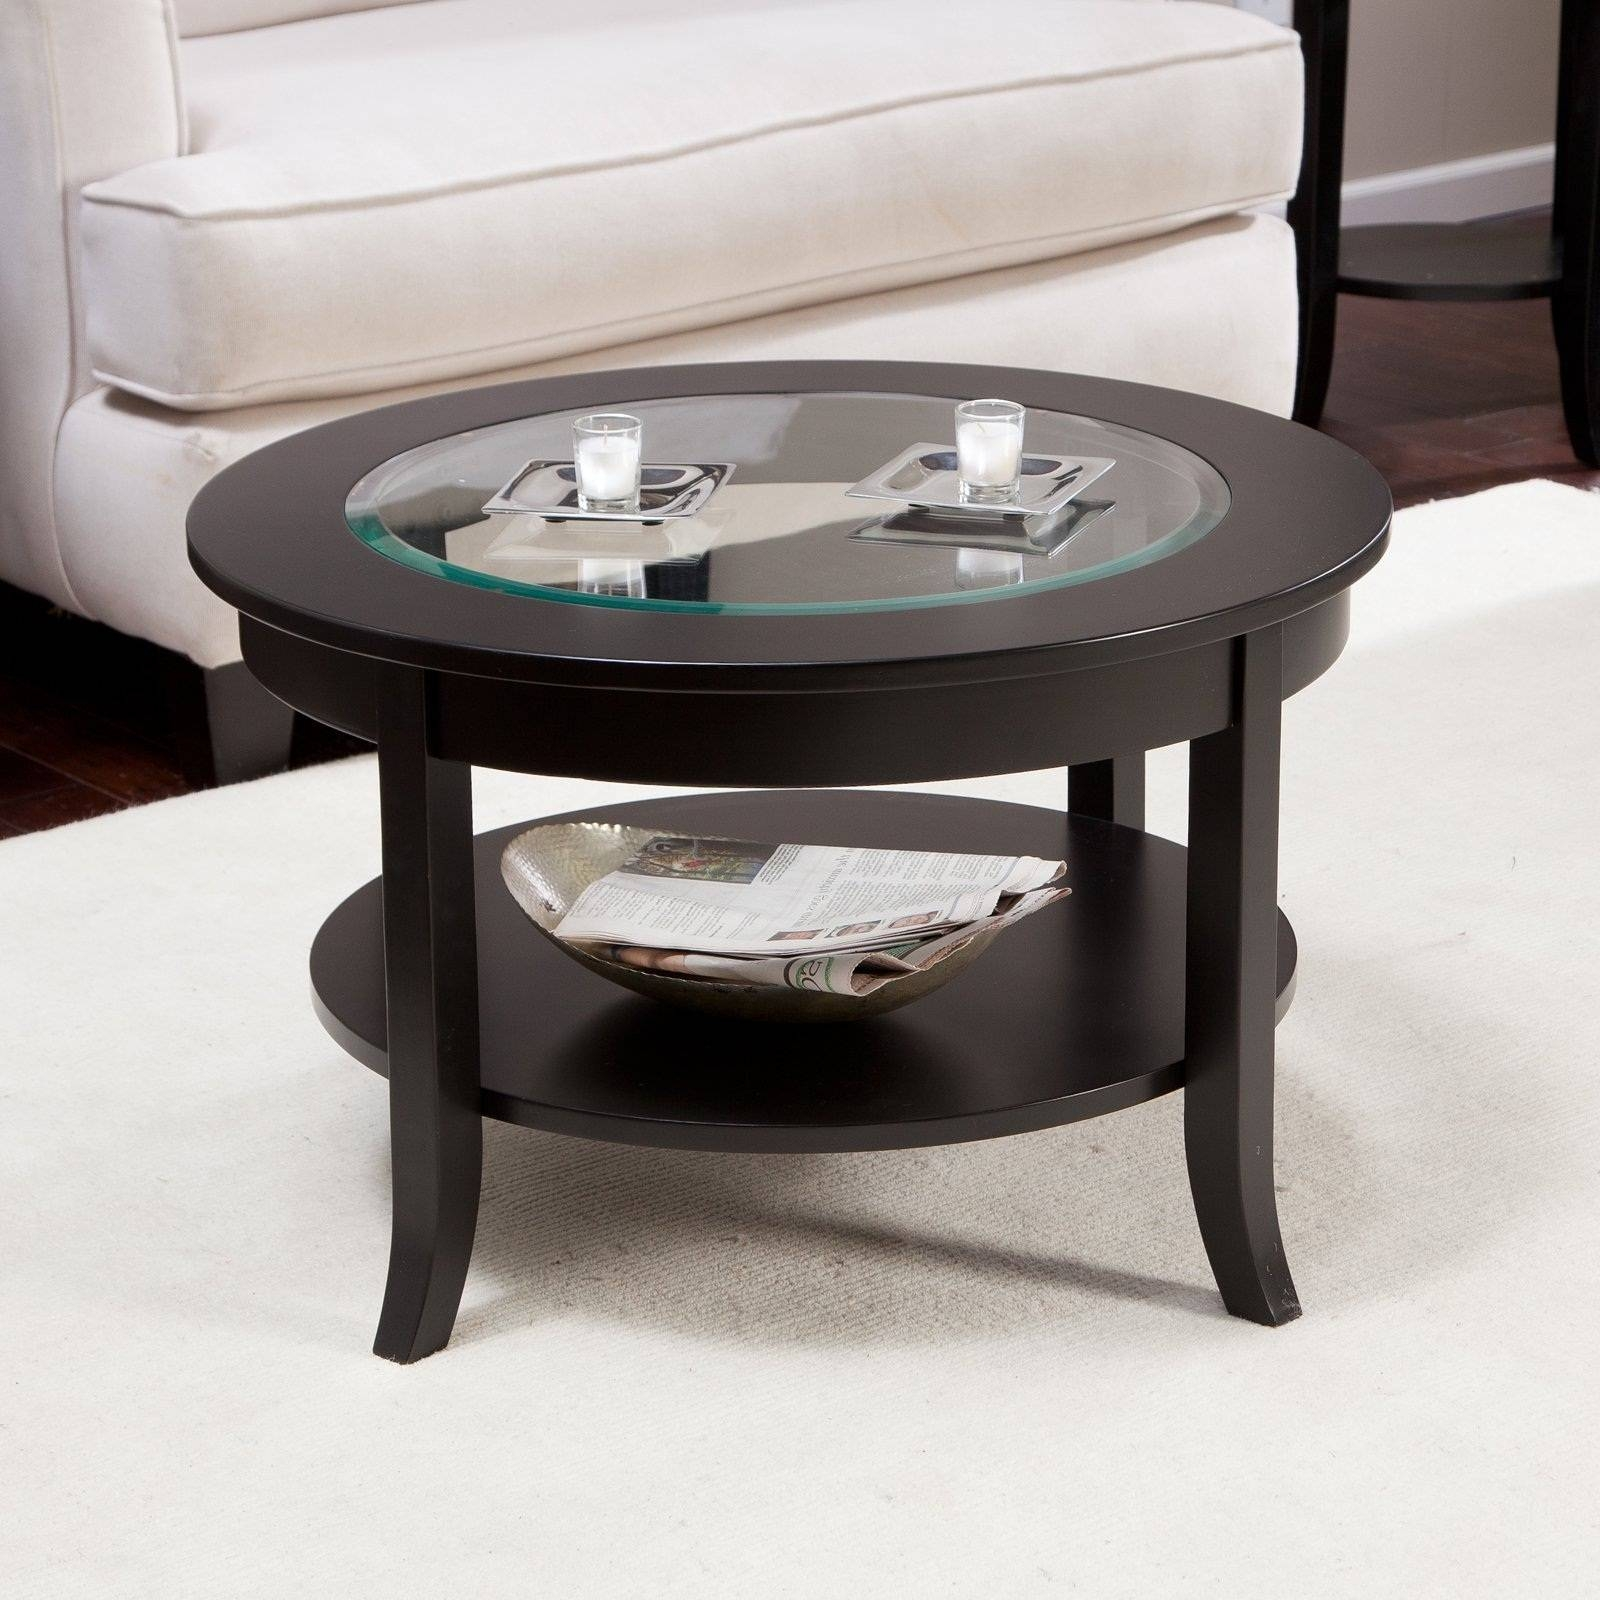 Table : Round Glass Coffee Table With Wood Base Foyer Basement inside Asian Coffee Tables (Image 30 of 30)